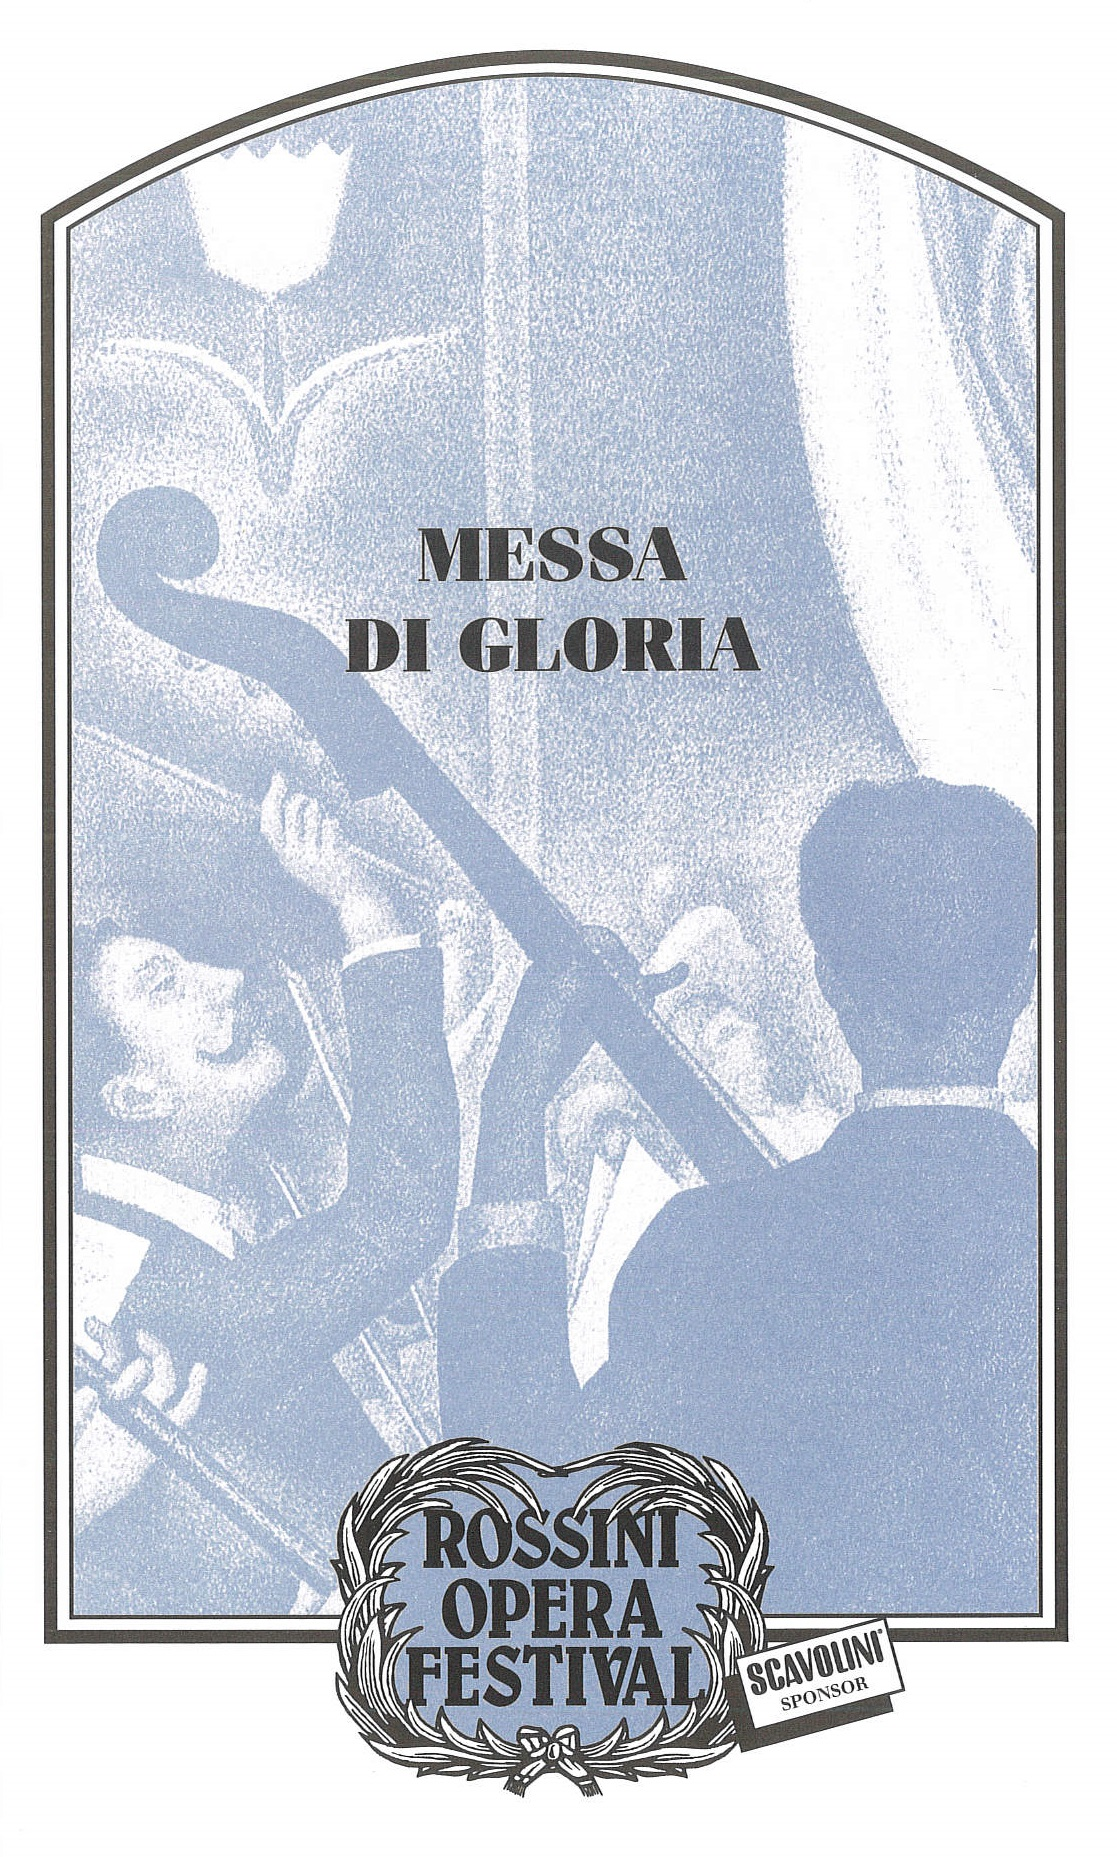 Messa di Gloria 1995